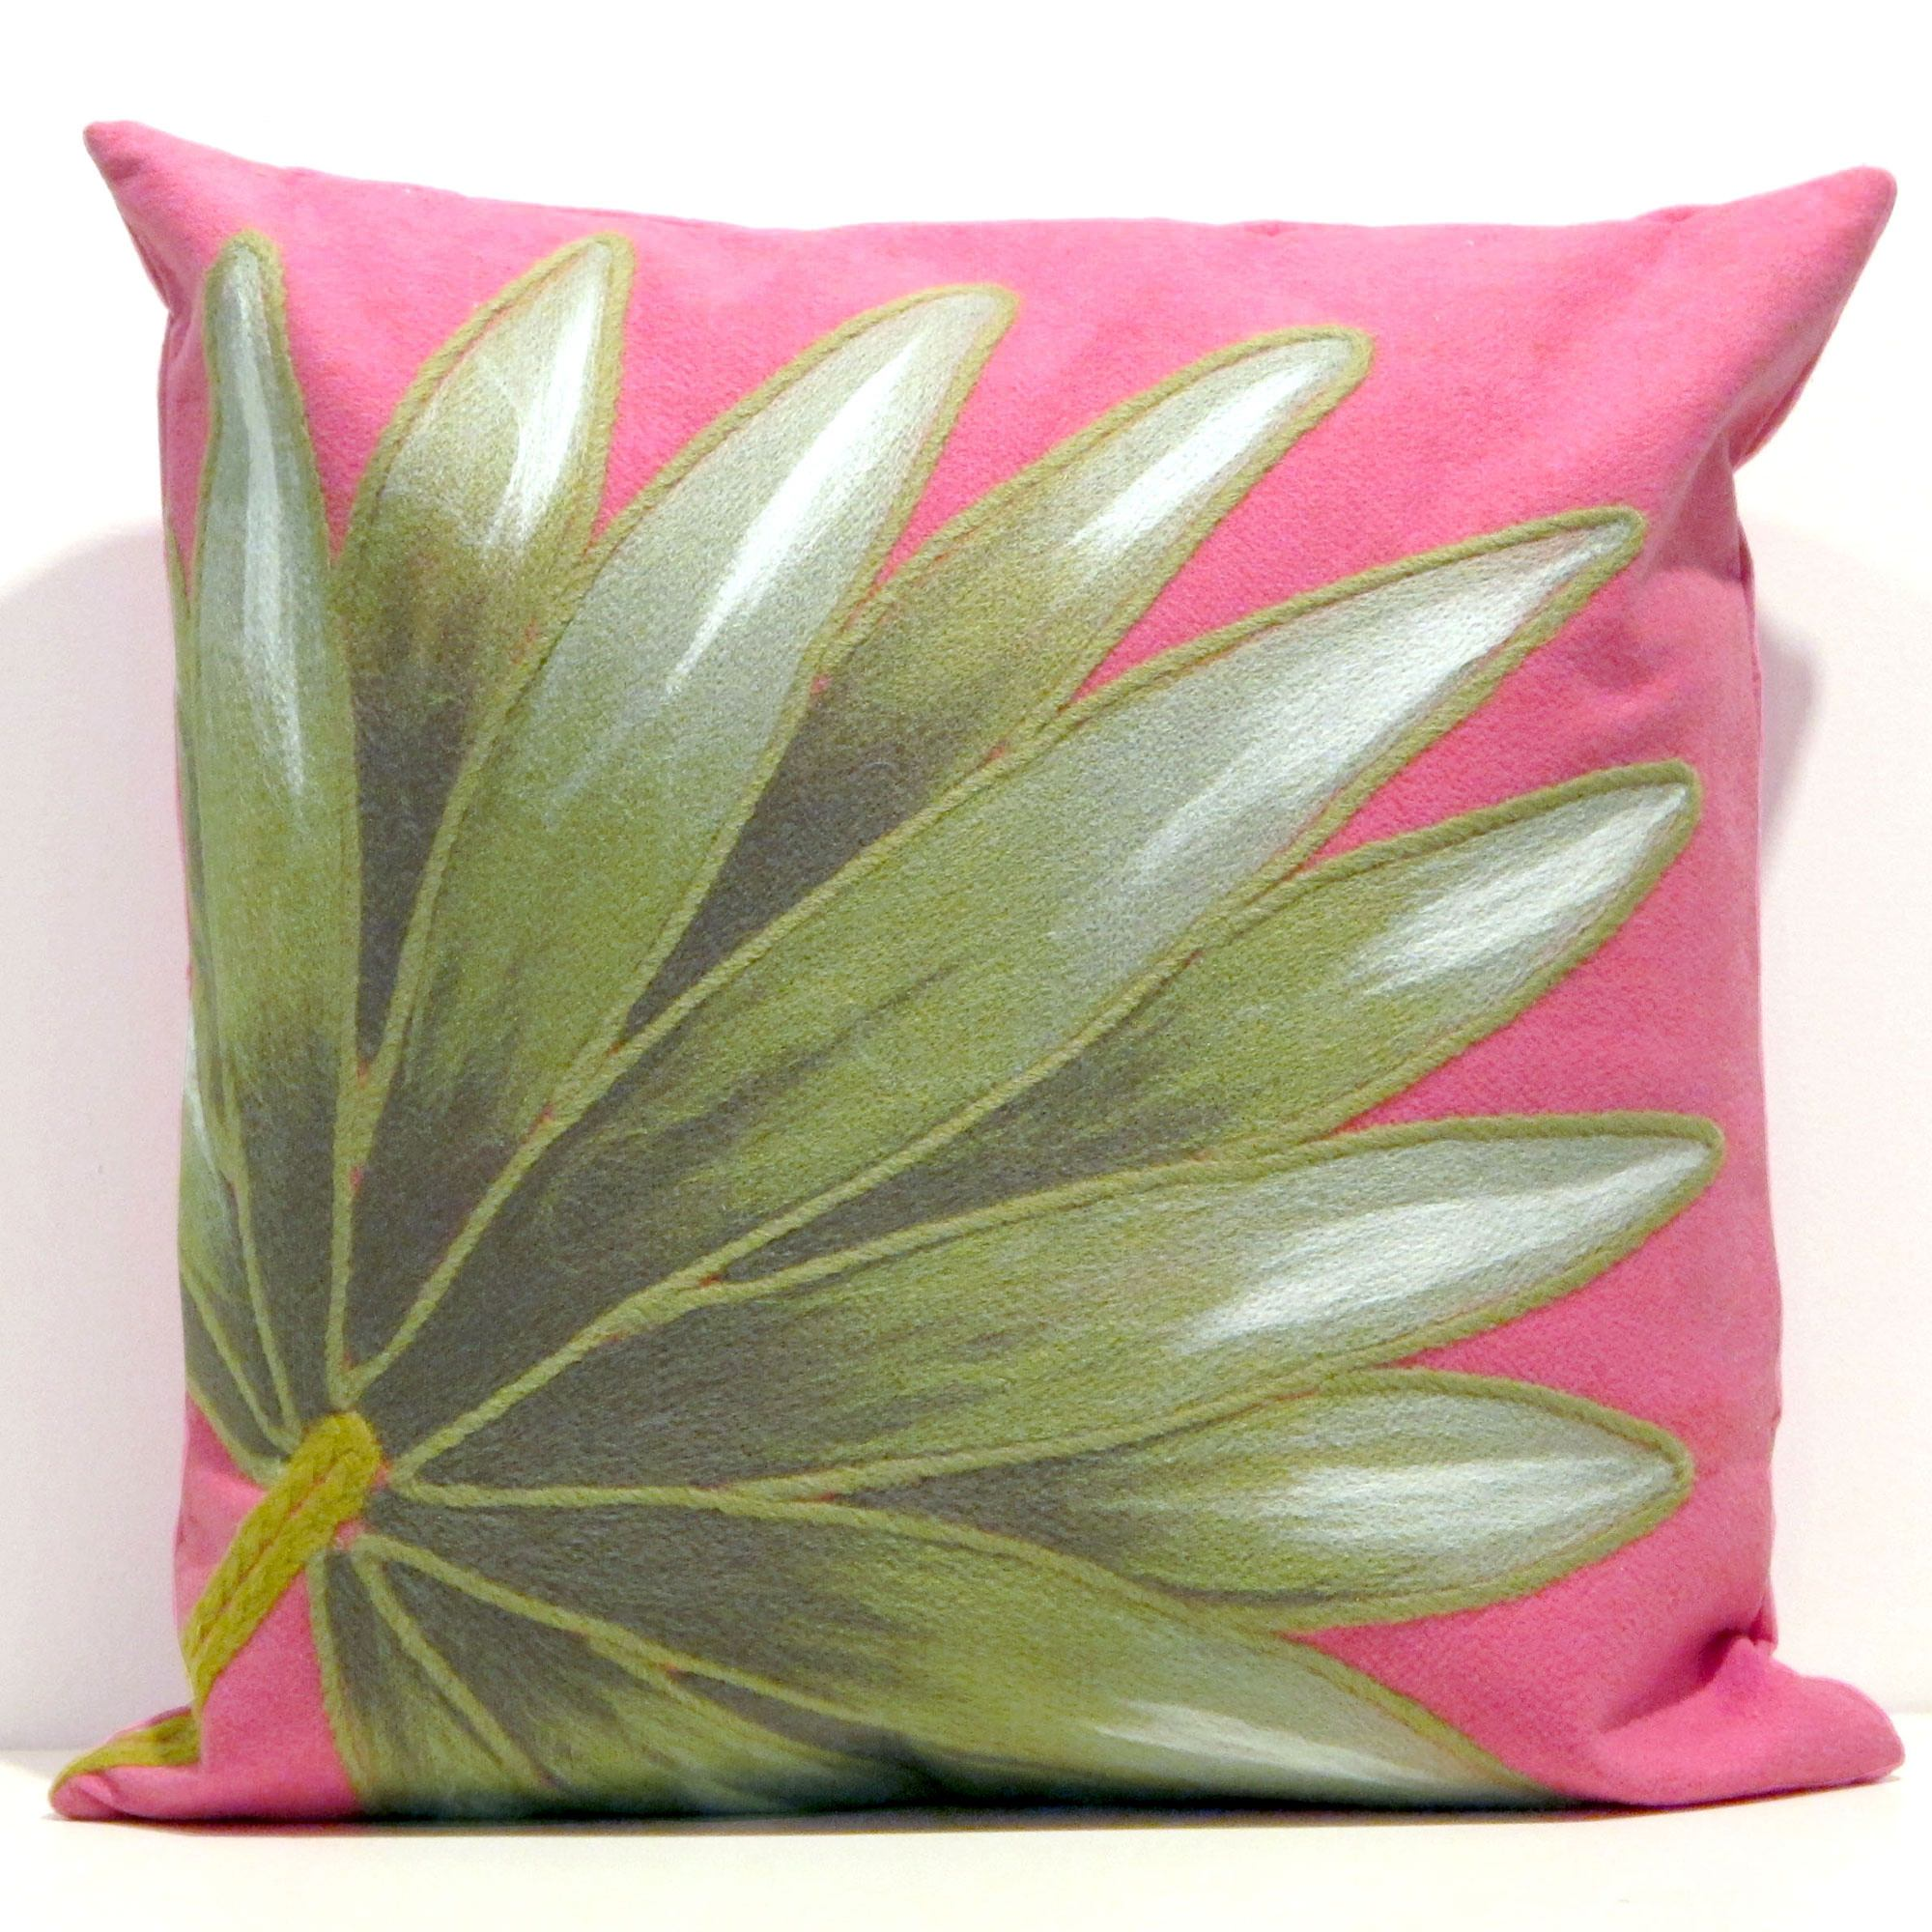 Pink Outdoor Pillows: Design Selections